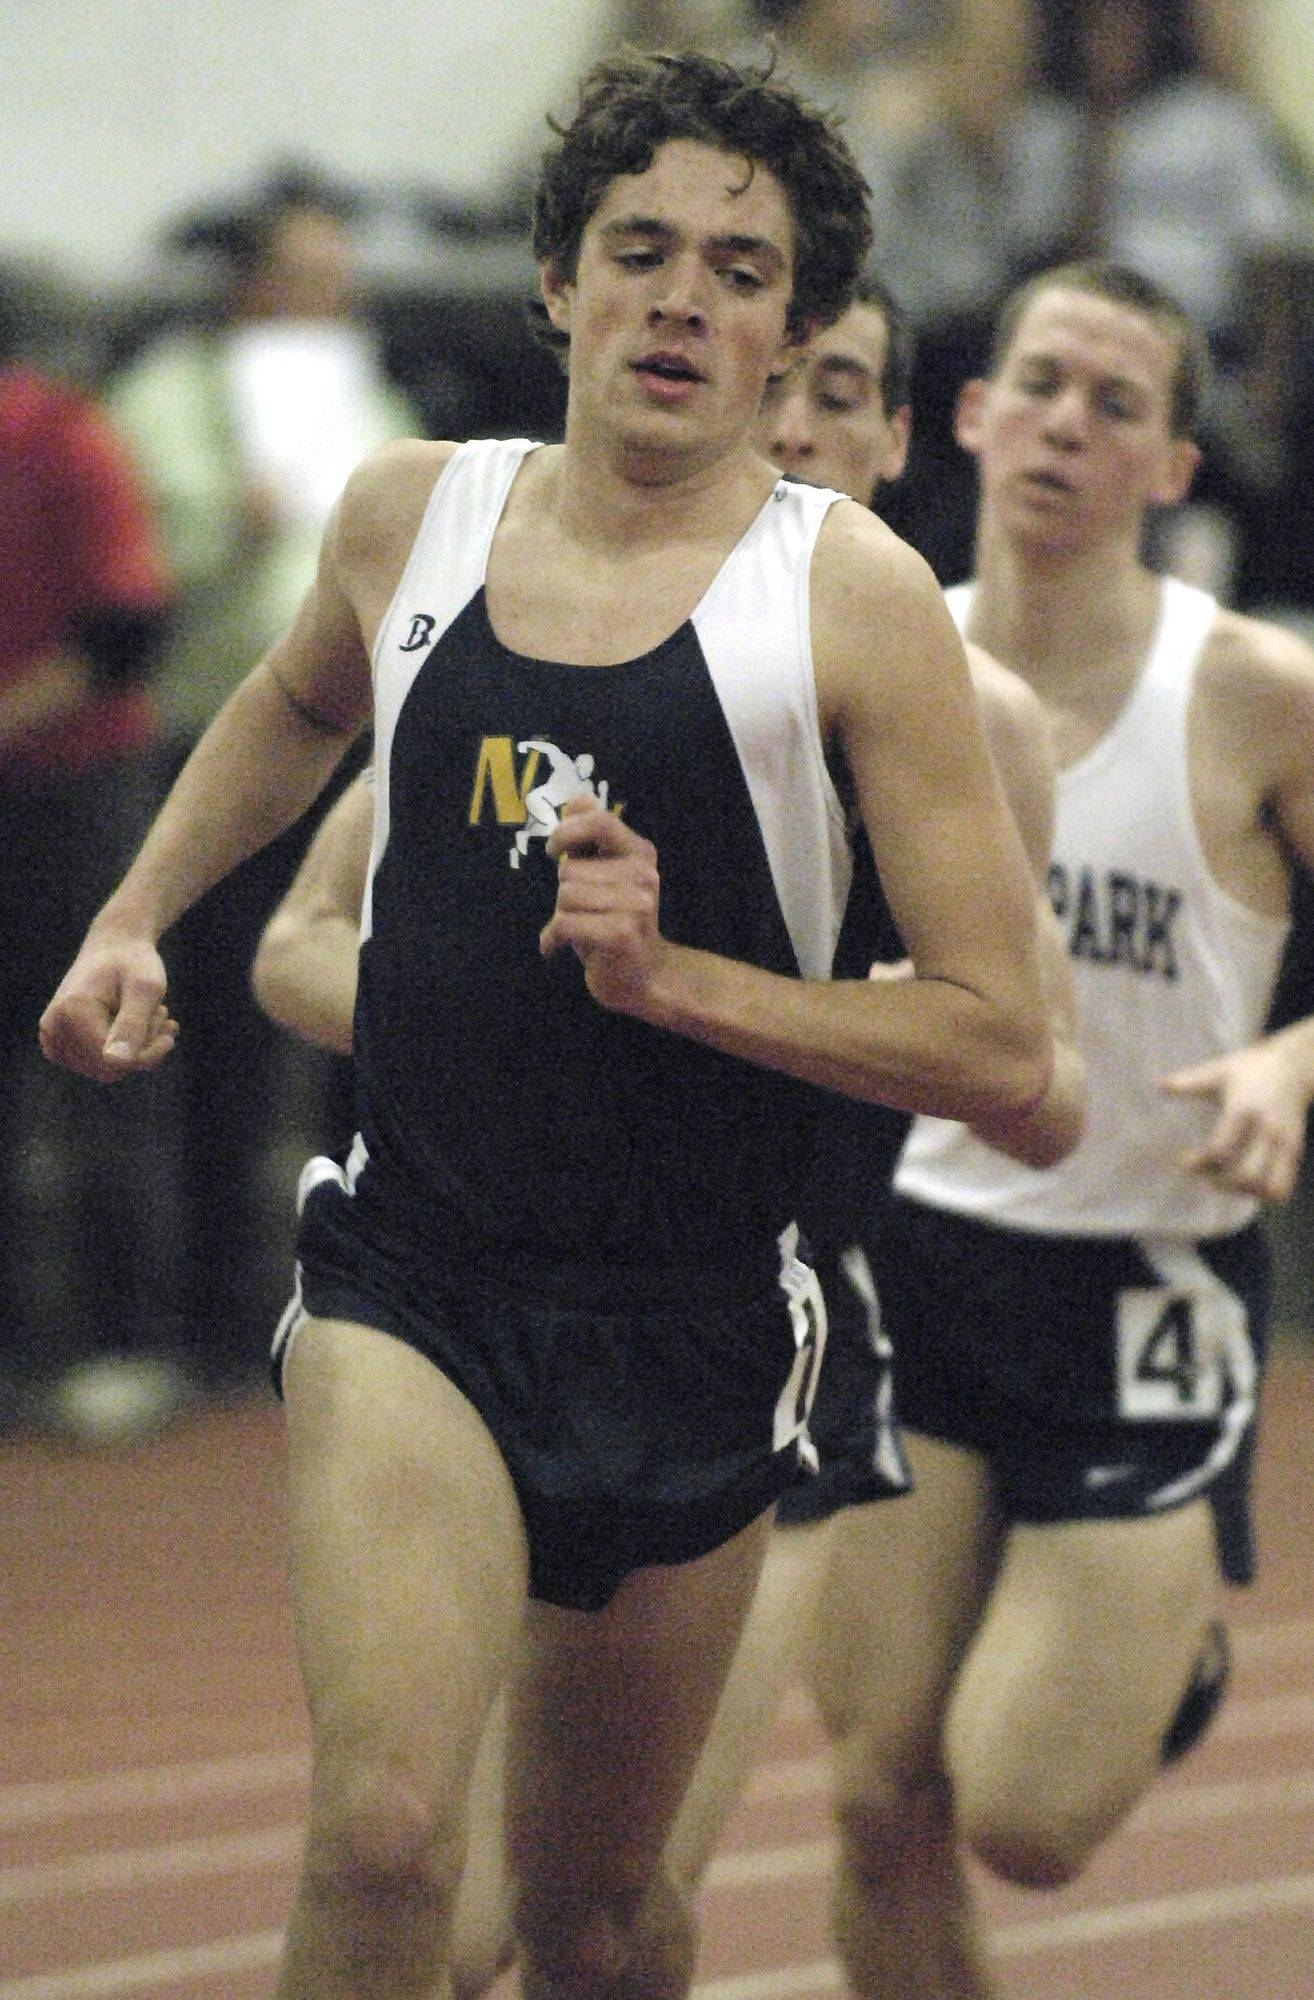 Neuqua Valley's Carlton Folster in the 3200 run at the Upstate Eight Conference on Wednesday, March 17.